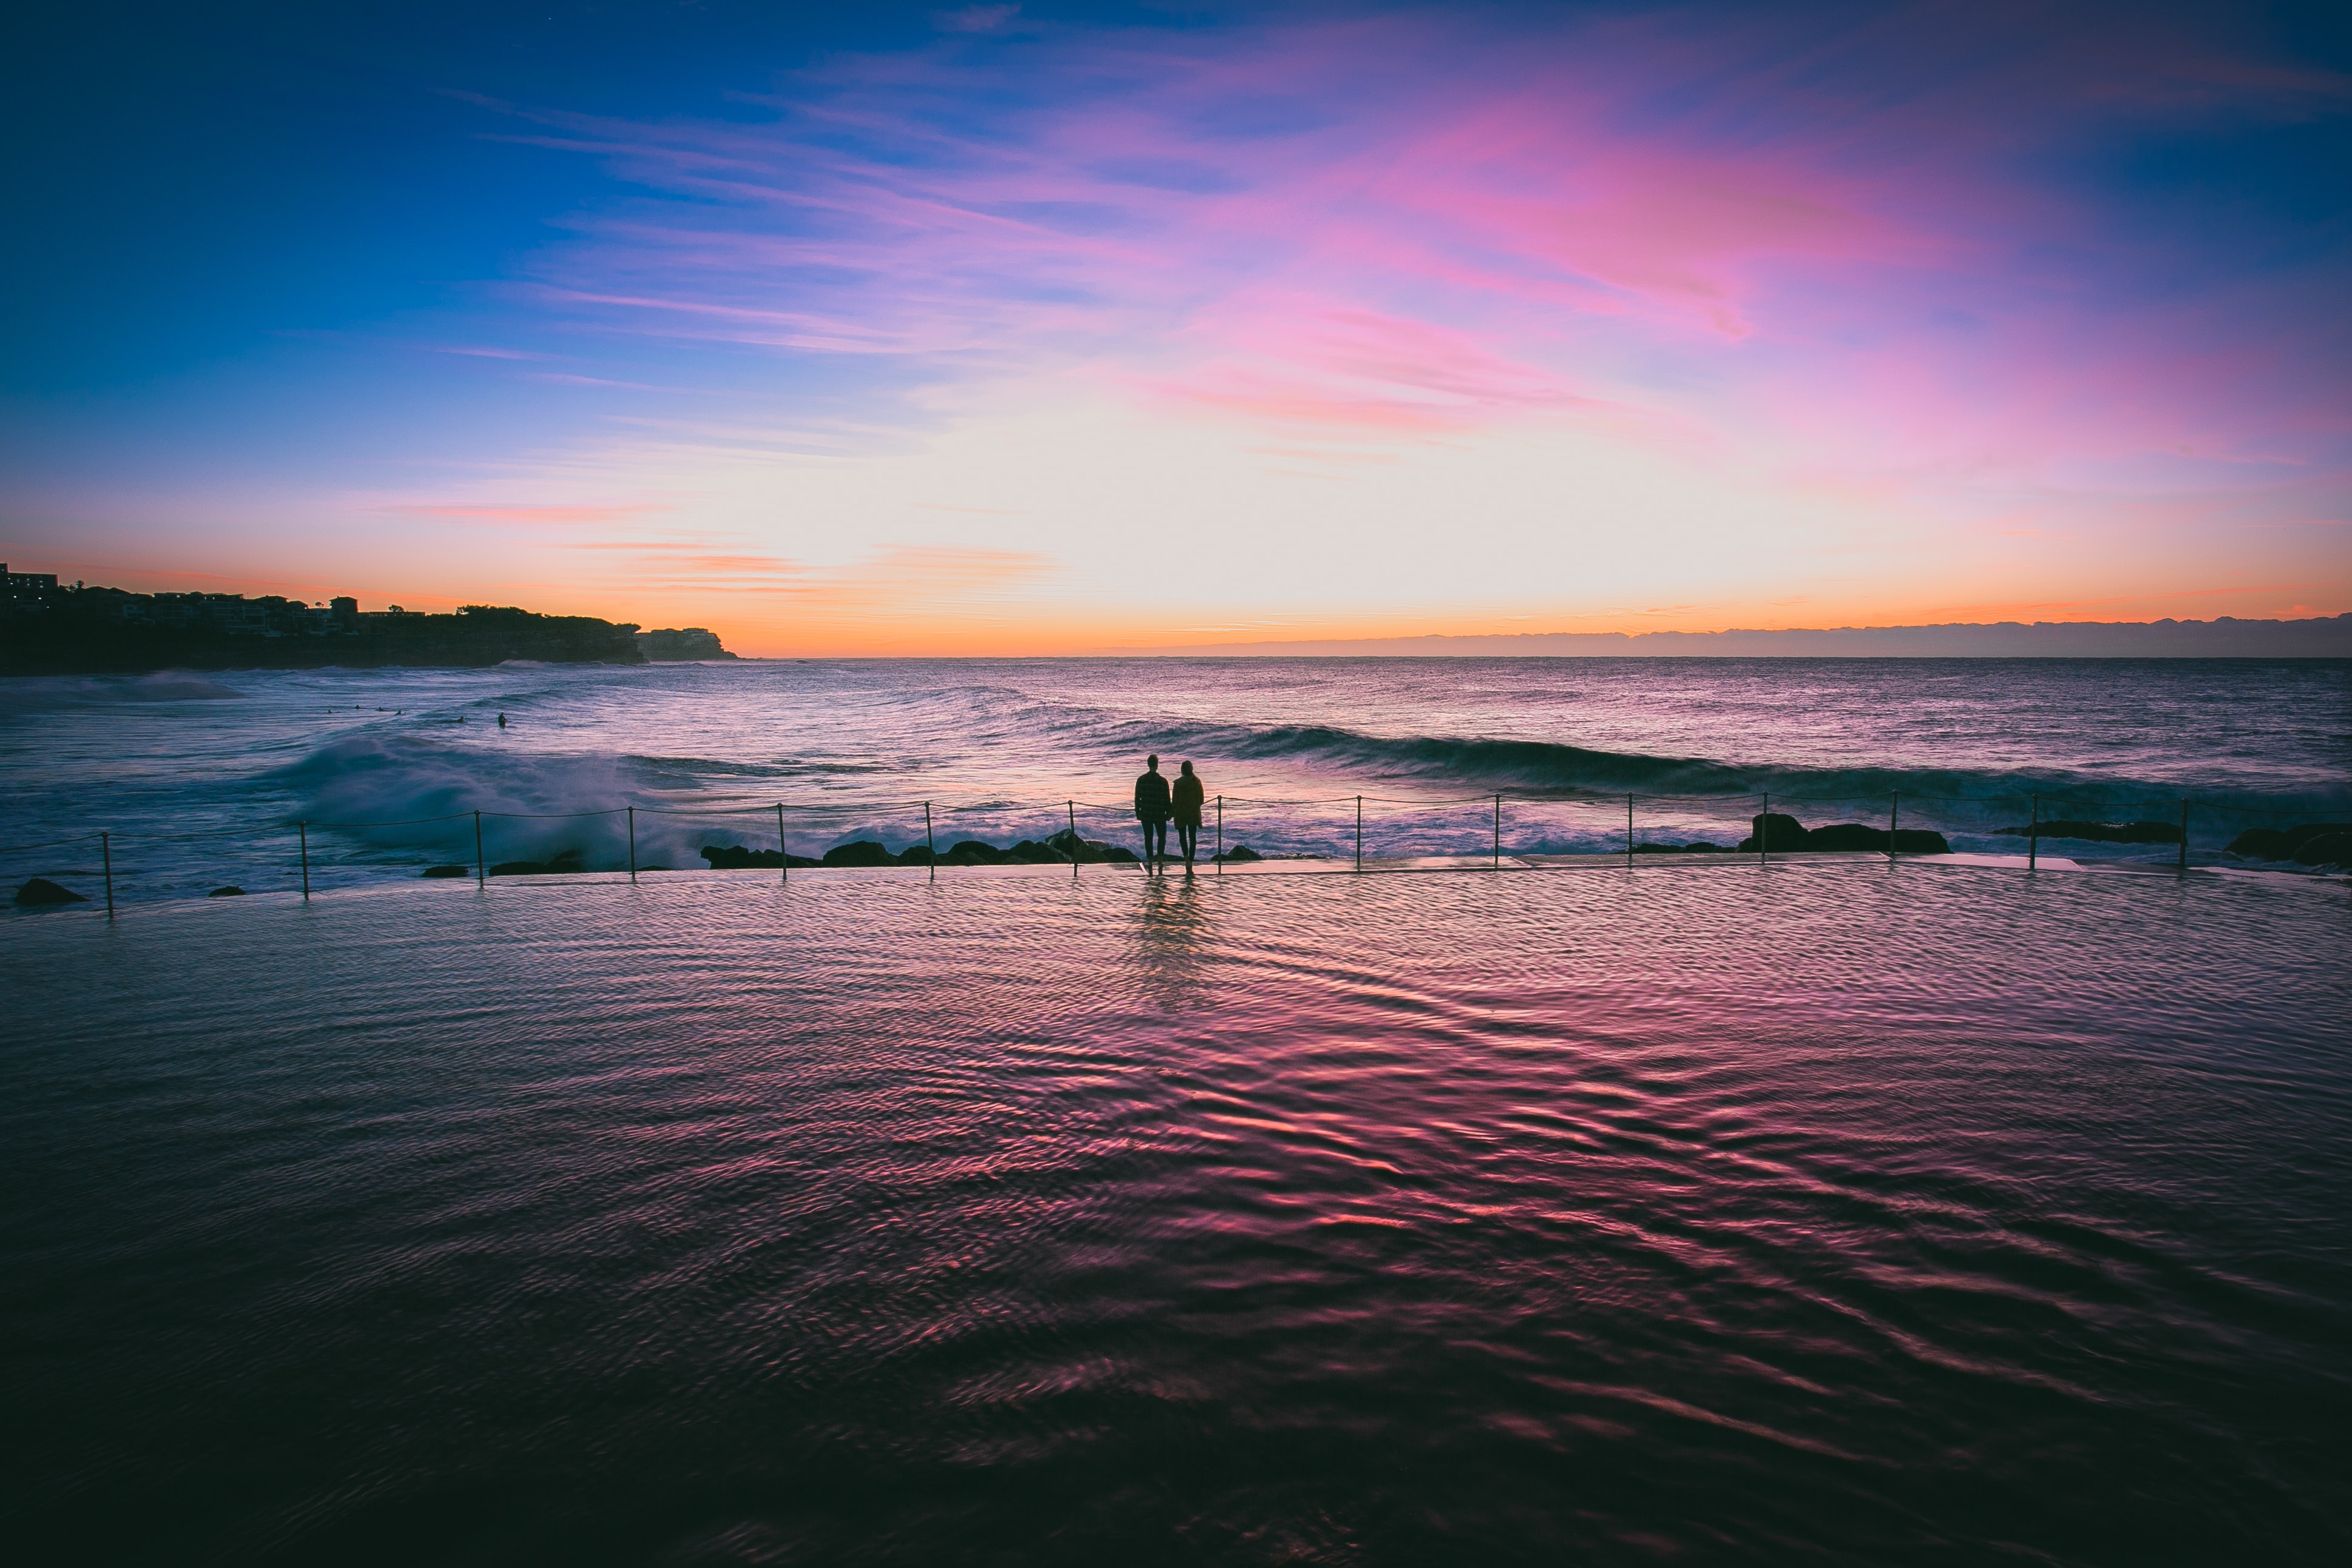 Couple holding hands at sunset on the edge of infinity pool by the ocean at Bronte Beach